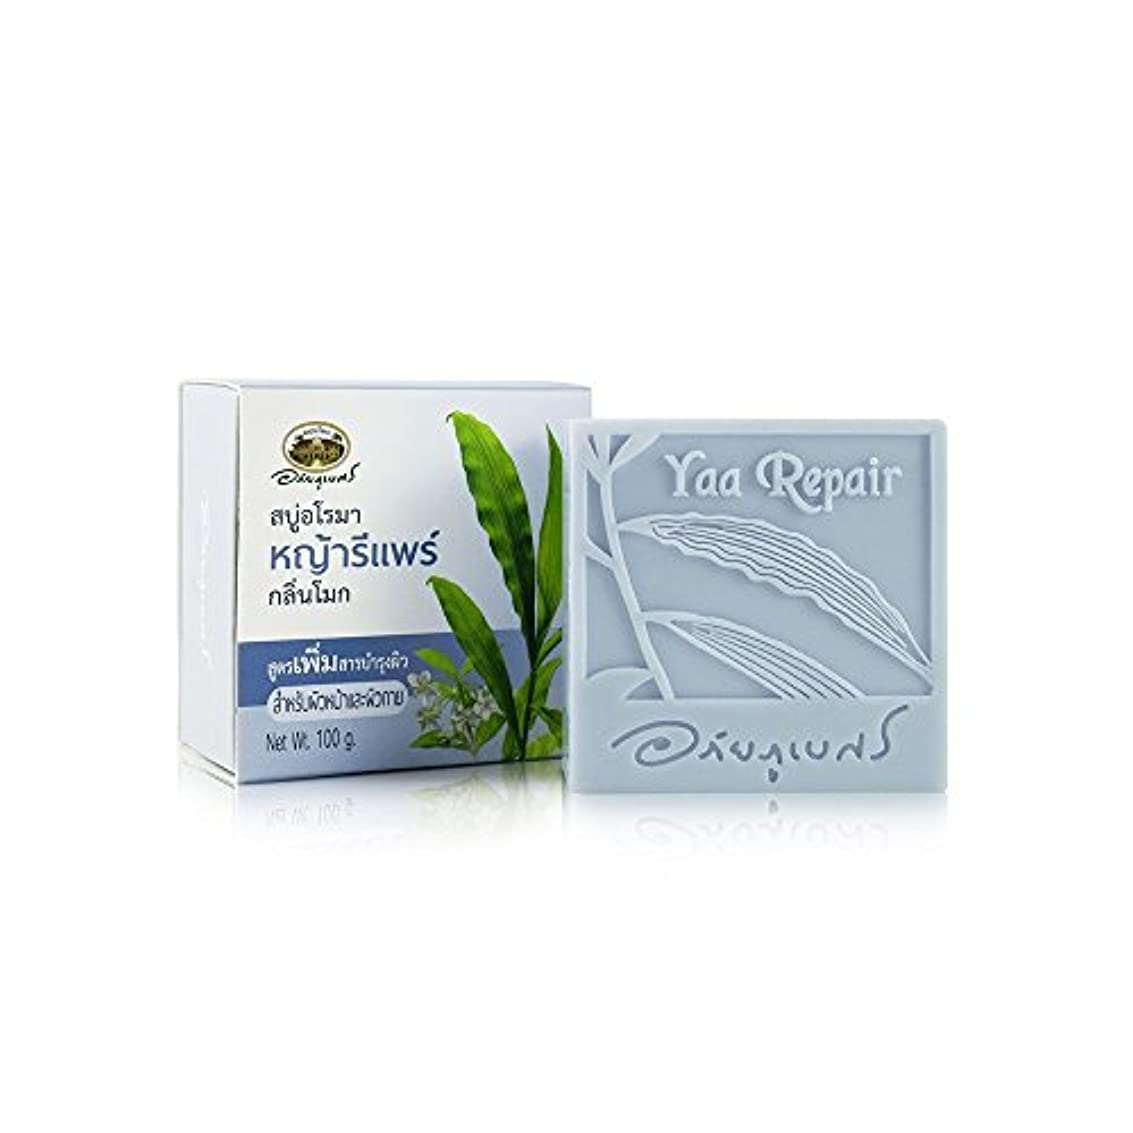 報酬の郵便慢なAbhaibhubejhr Thai Aromatherapy With Moke Flower Skin Care Formula Herbal Body Face Cleaning Soap 100g. Abhaibhubejhr...